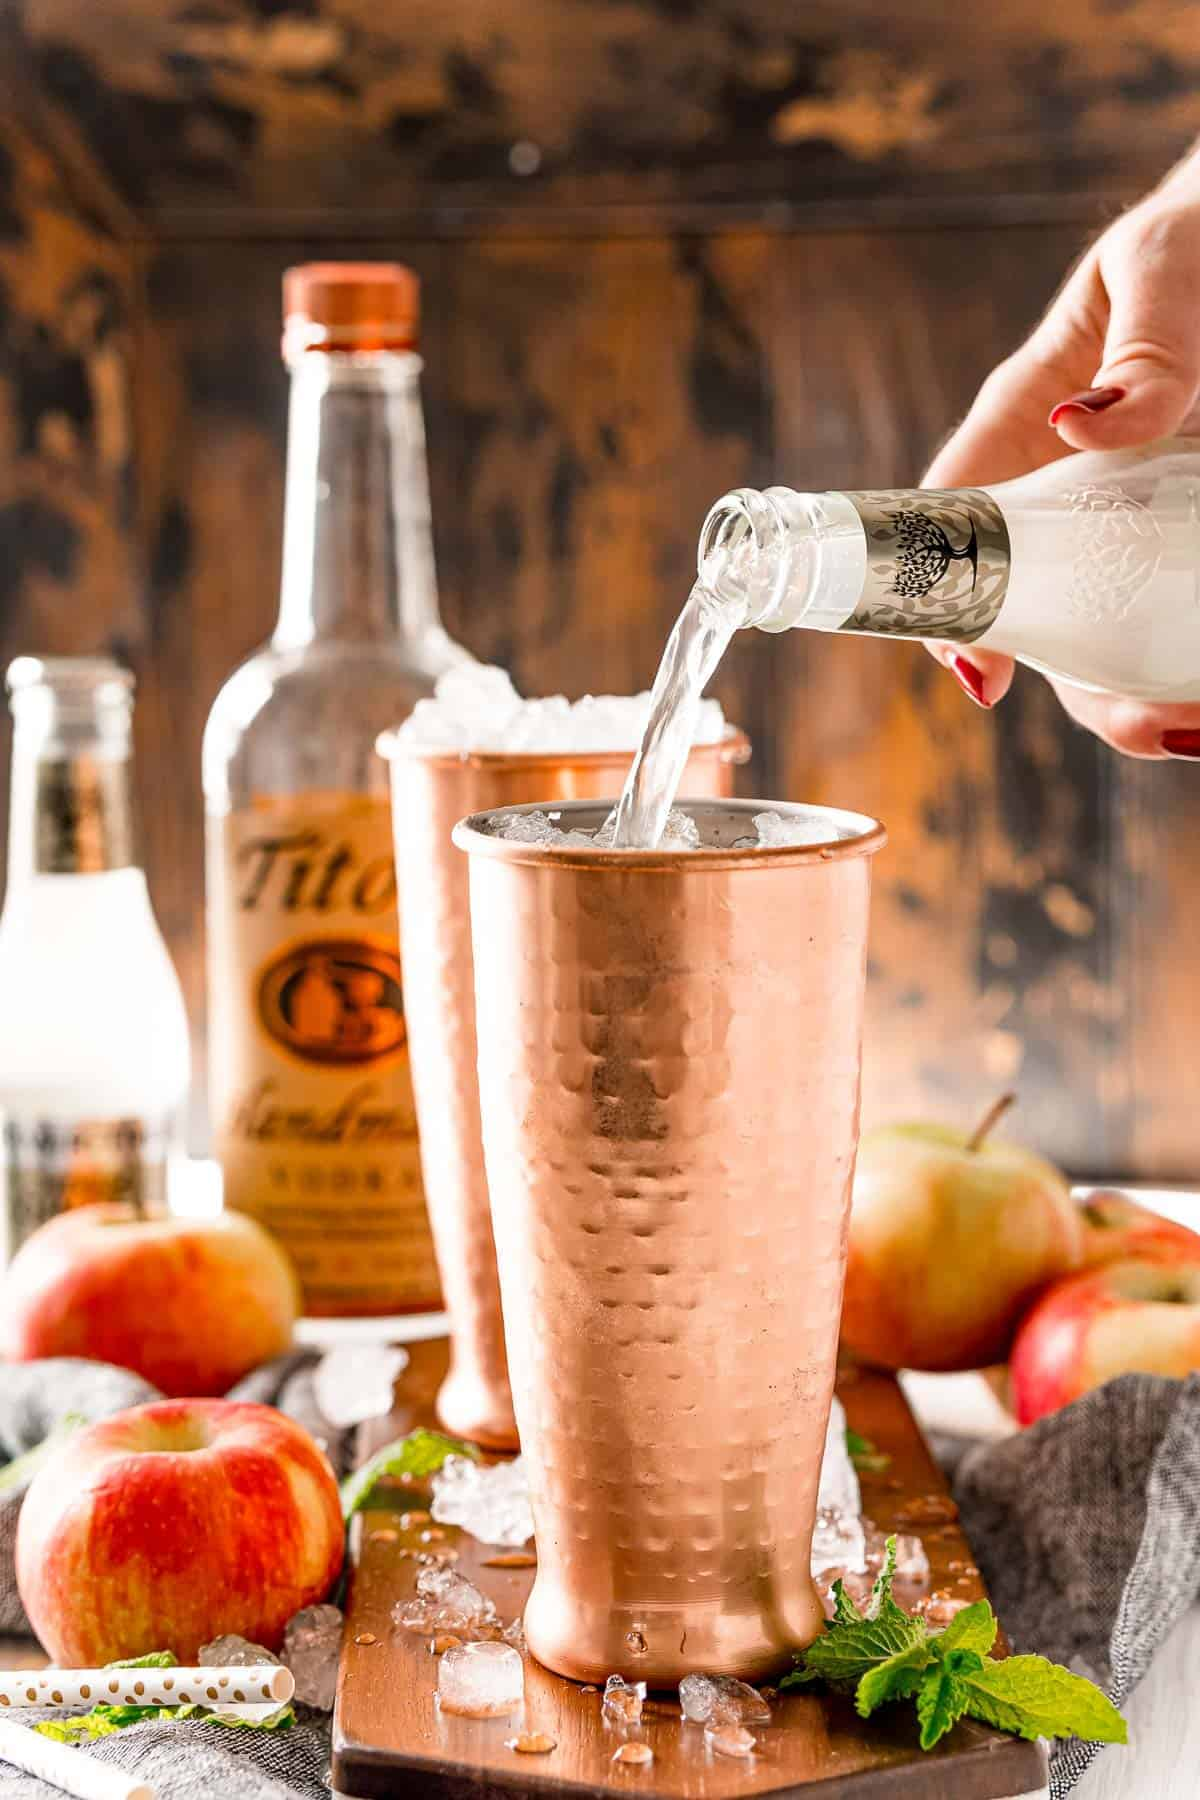 Ginger beer being poured into a copper mug.